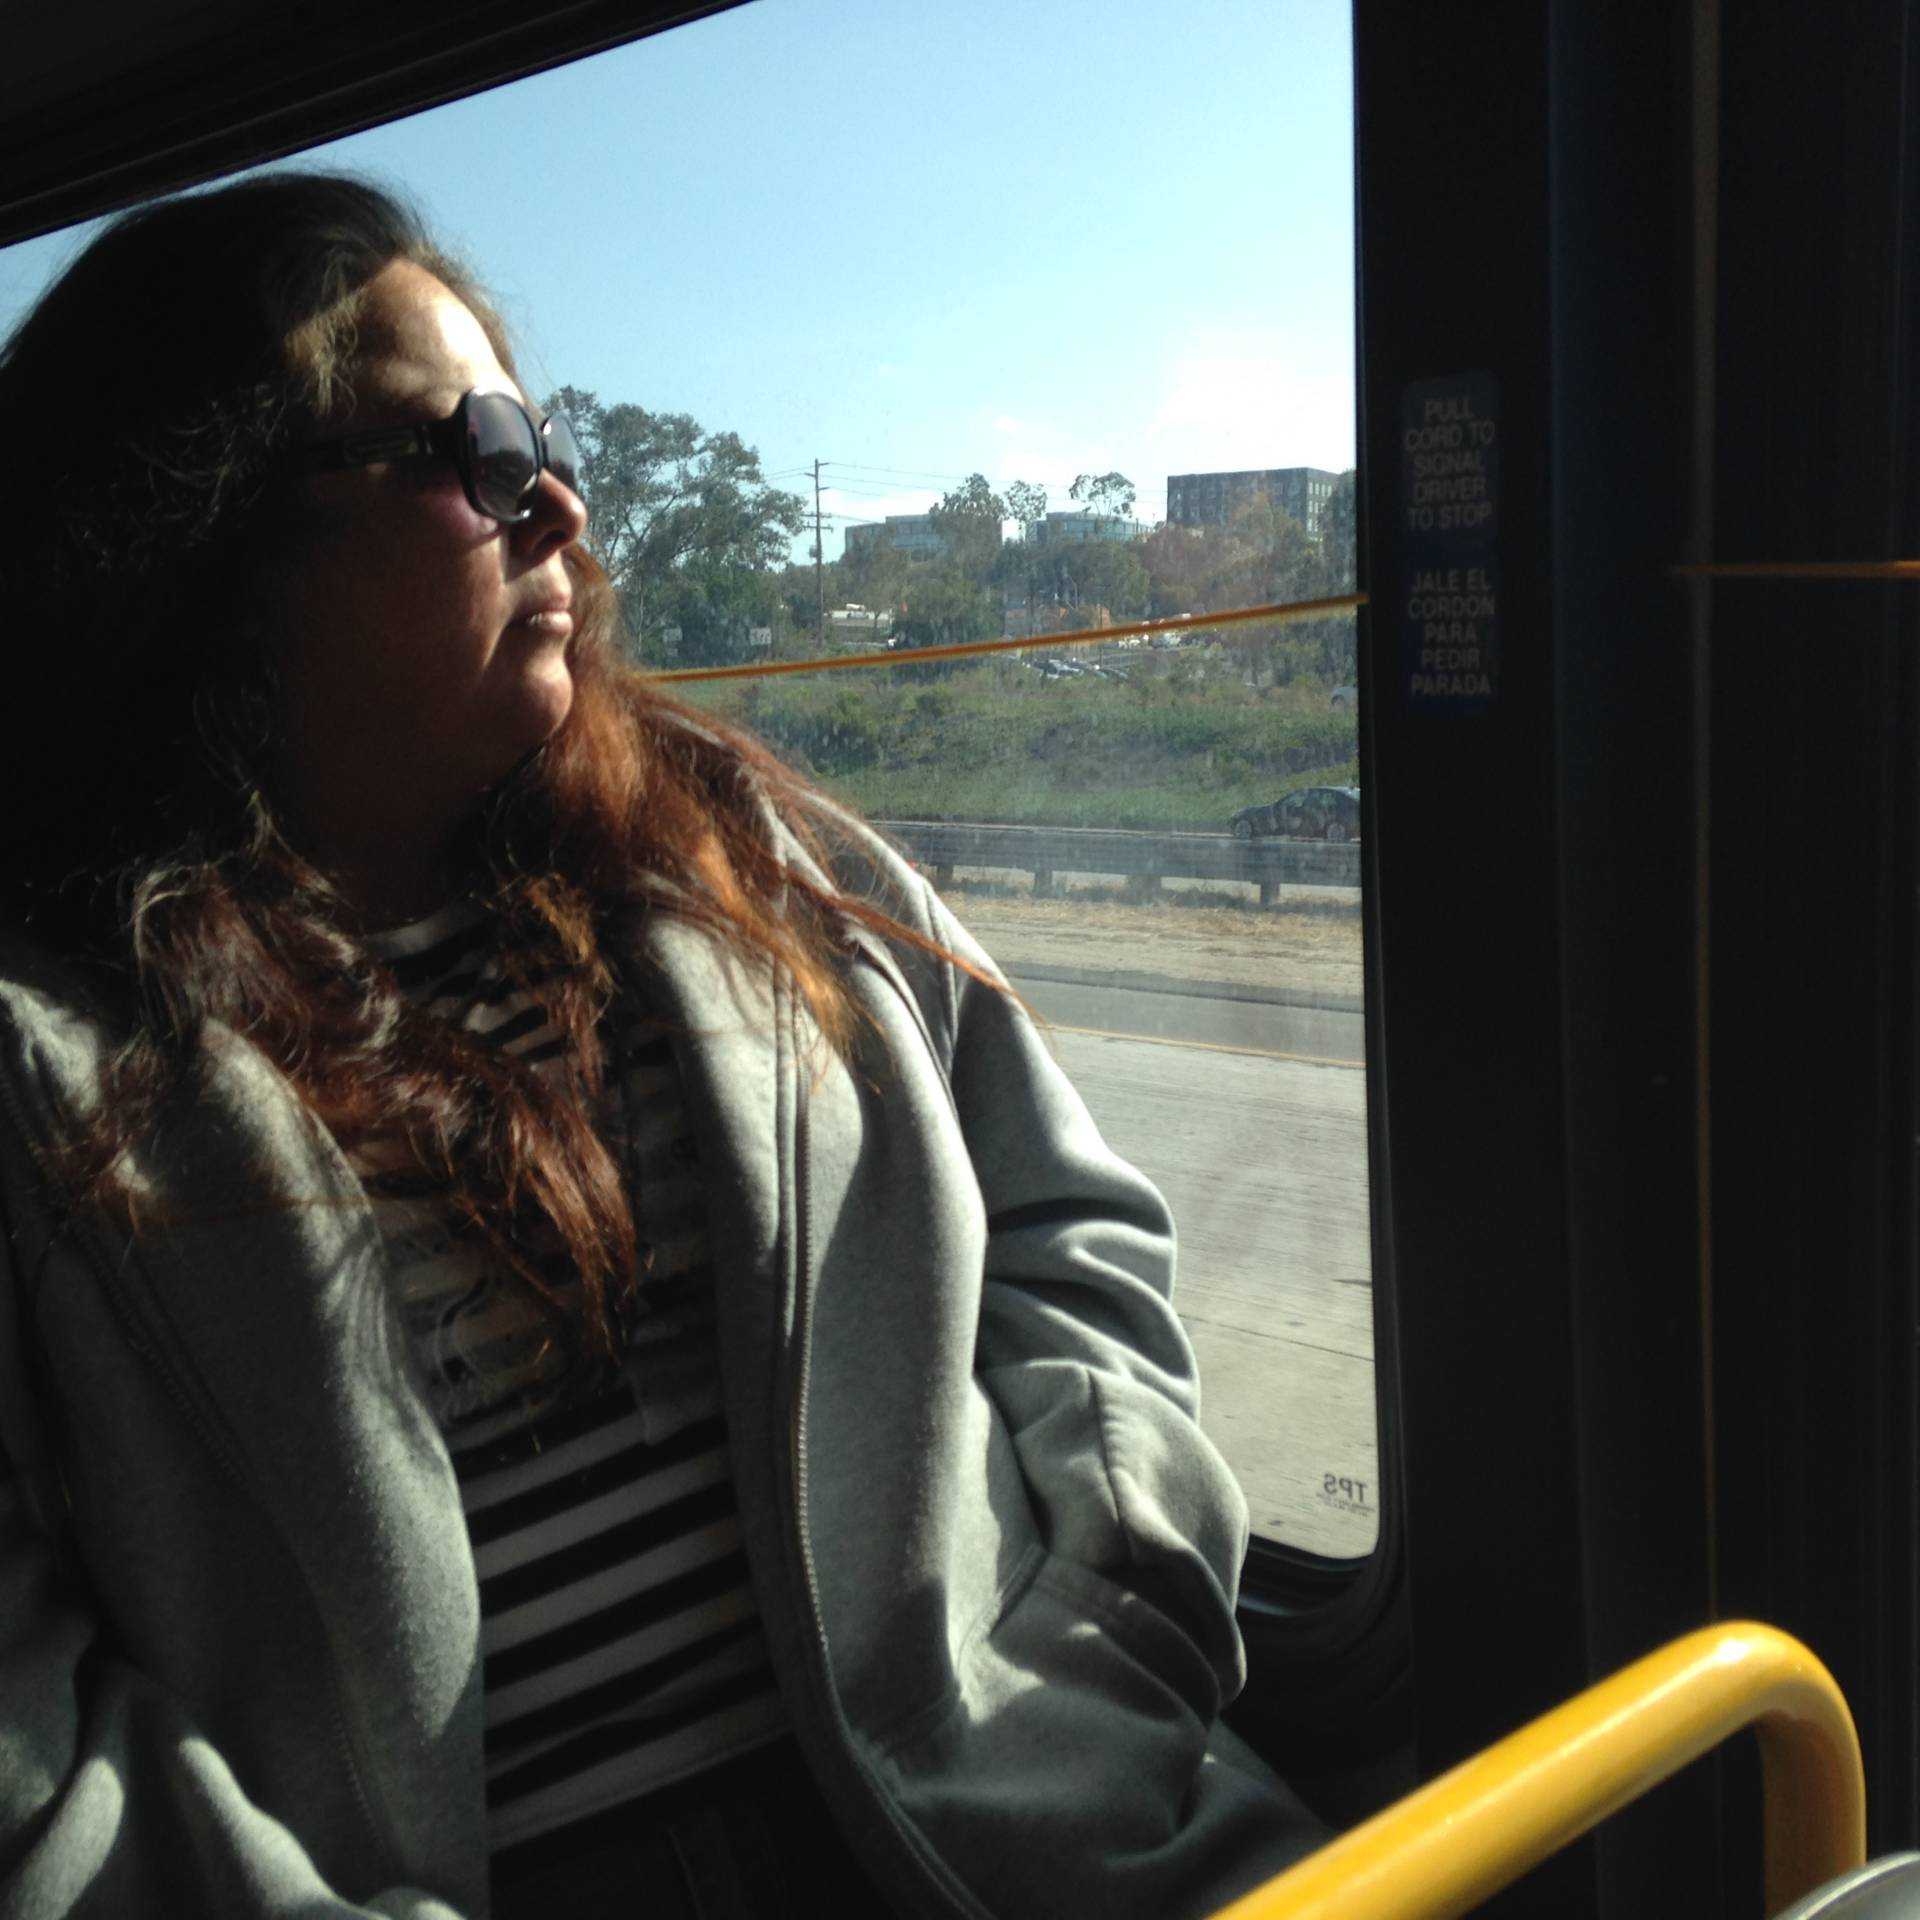 Maria Spivey, riding a bus in San Diego. She's on leave from her job as a driver.